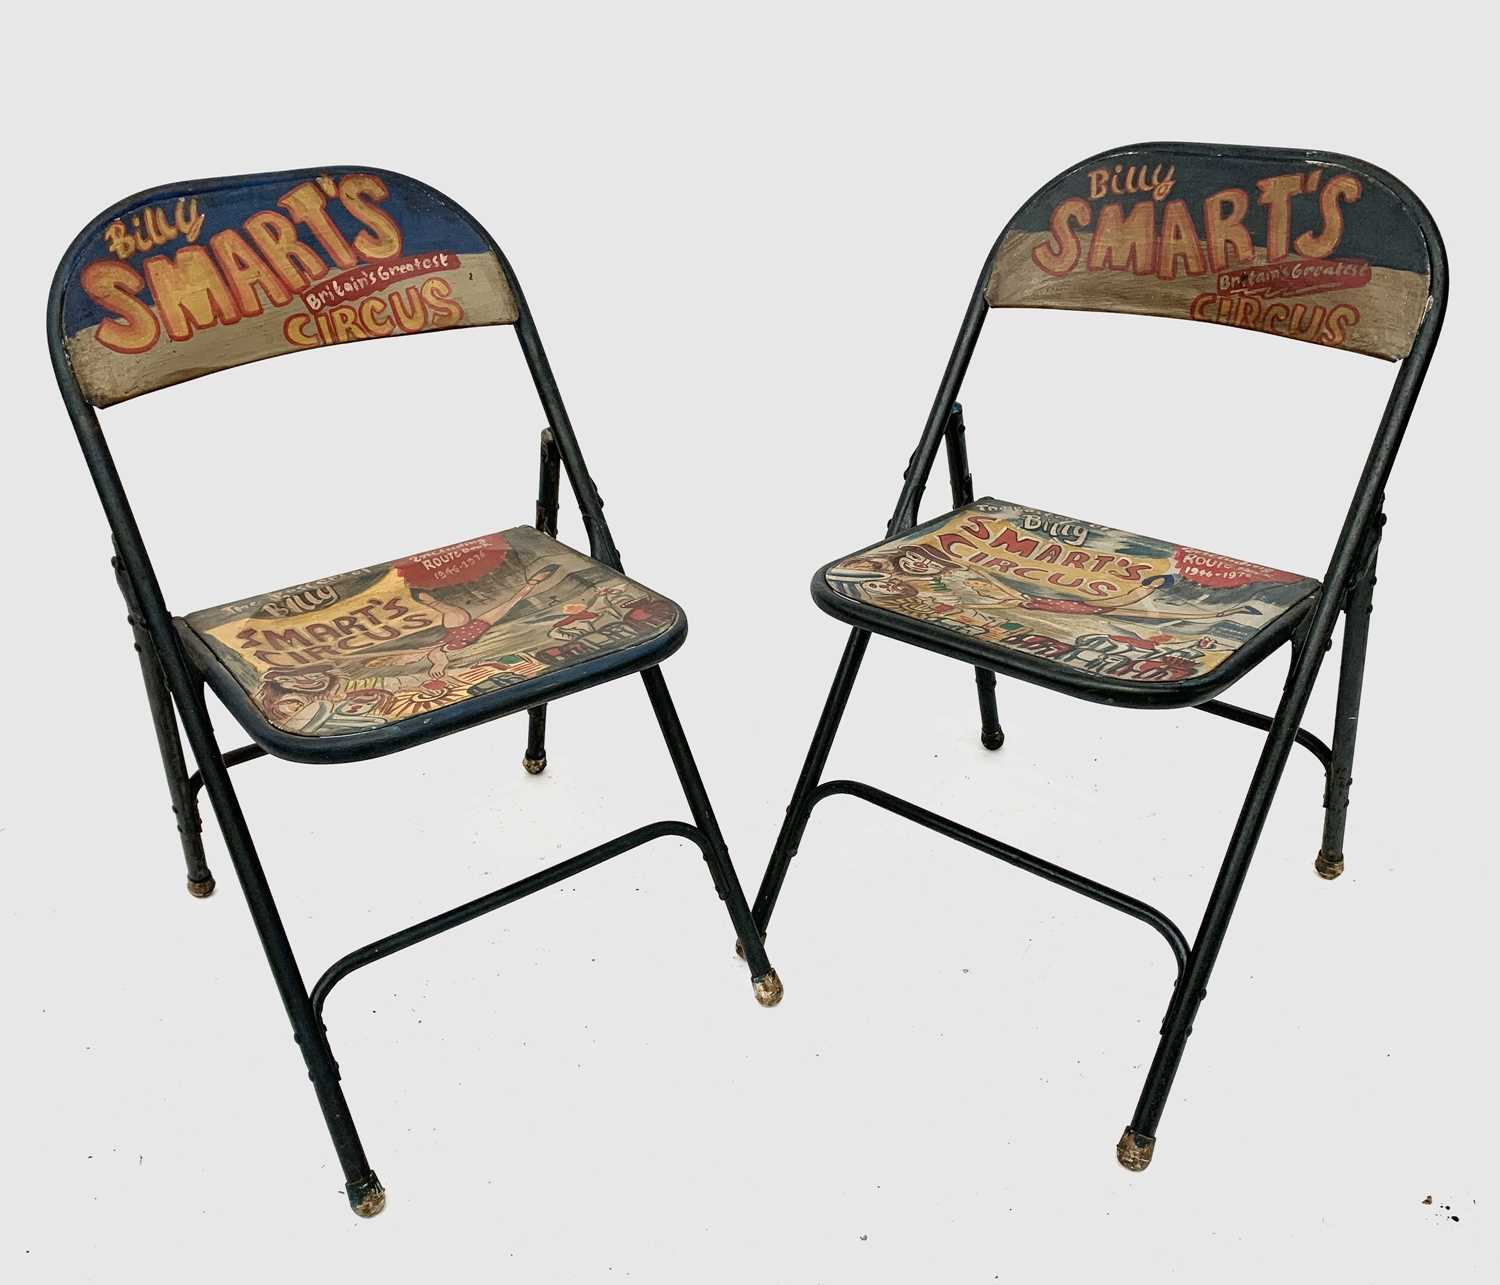 Lot 3249 A Pair Of Painted Metal Folding Chairs